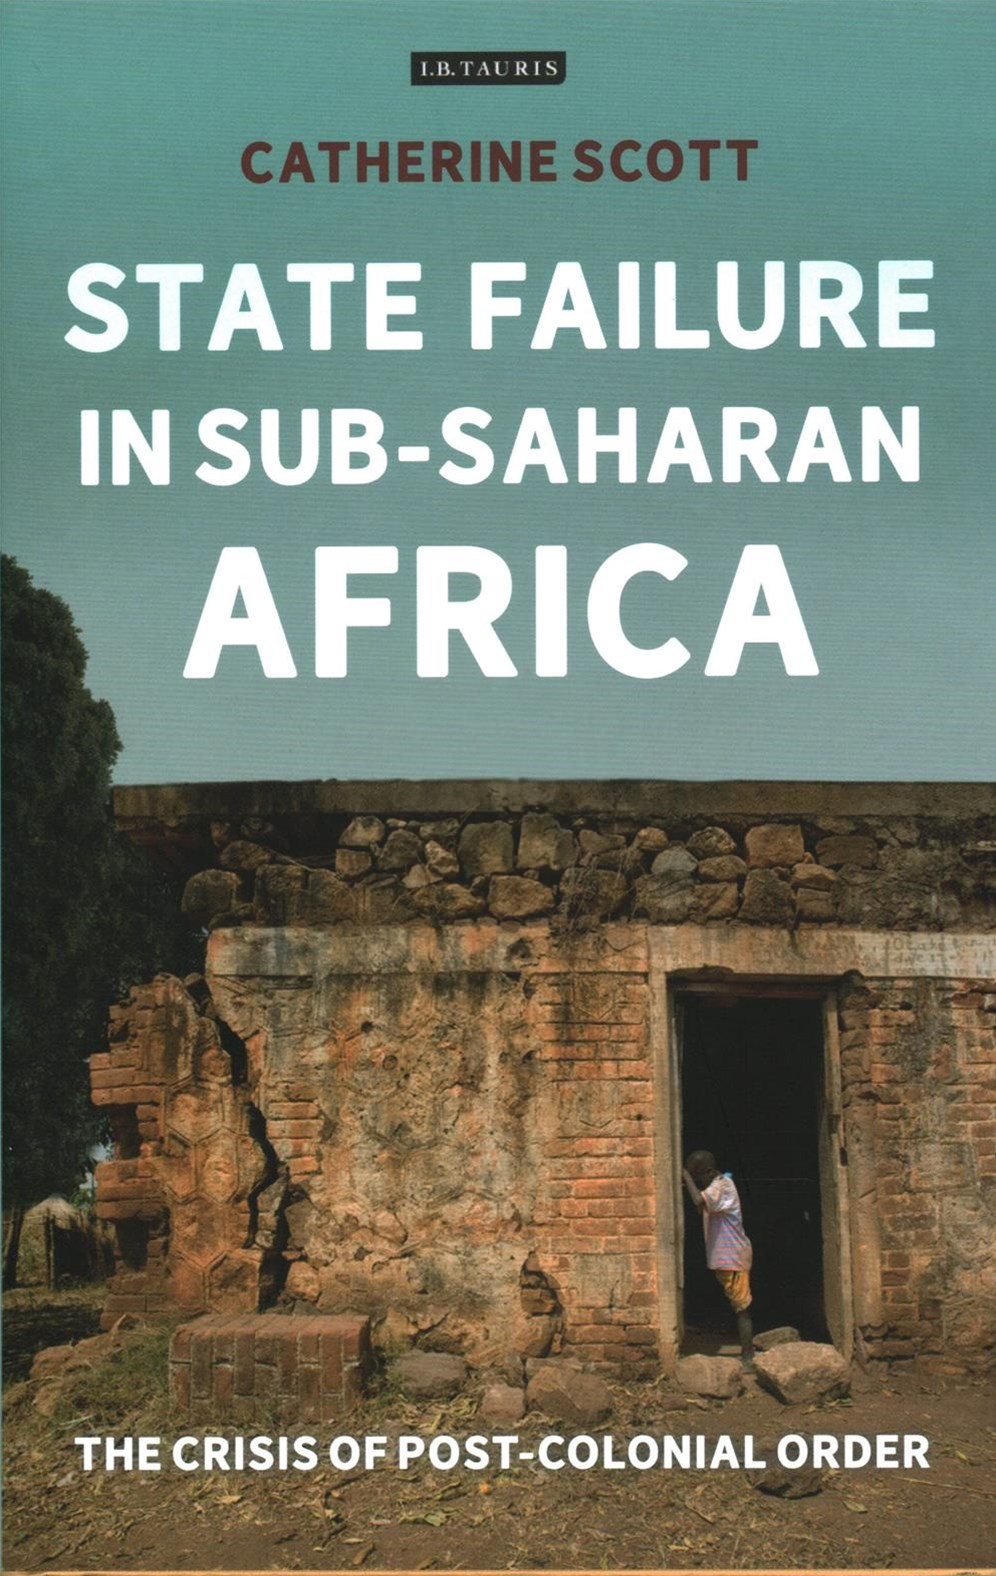 State Failure in Sub-Saharan Africa